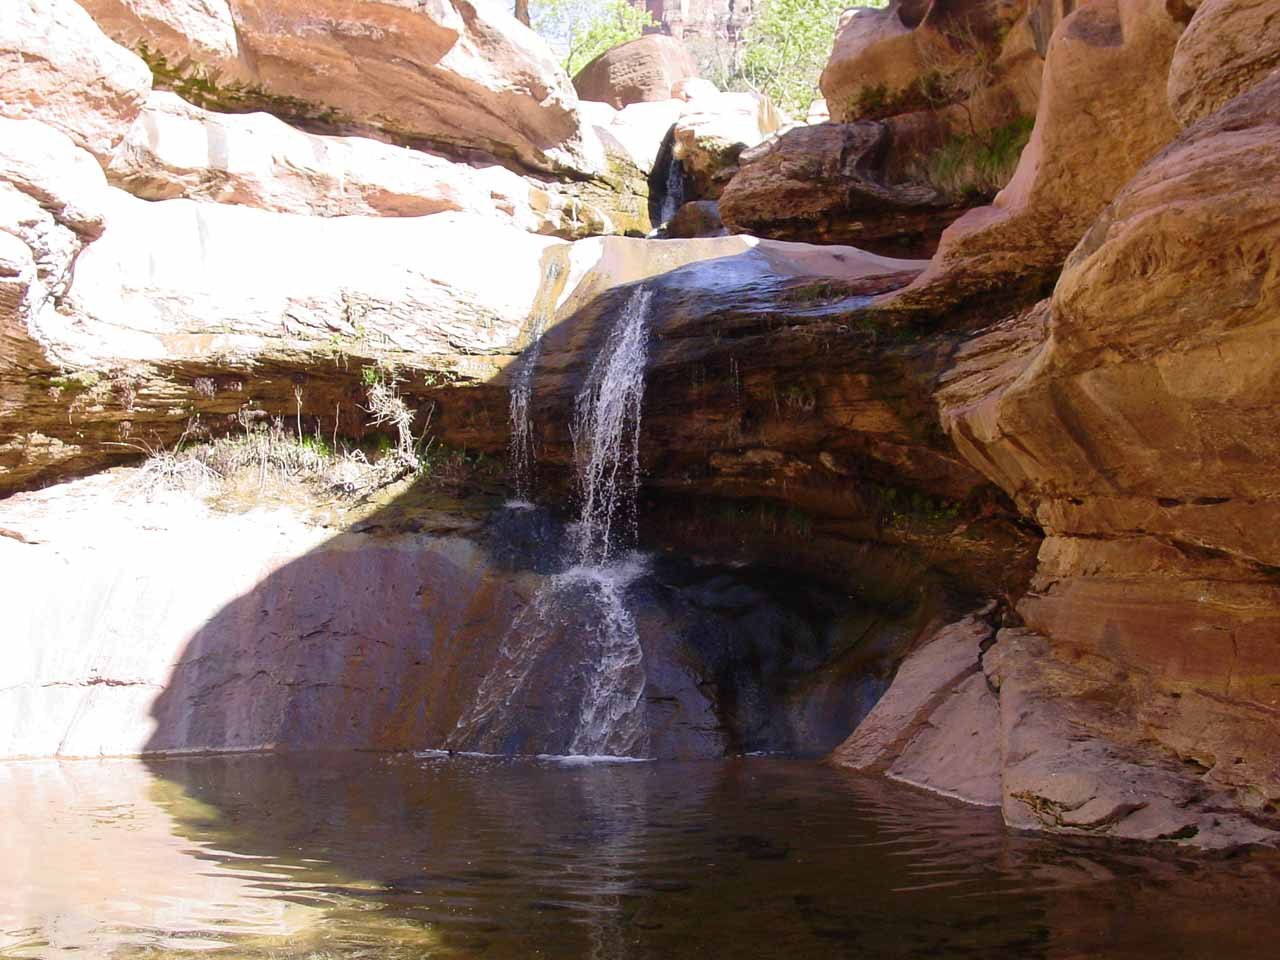 Here's a broad look at the Pine Creek Waterfall and its chilly pool at its base